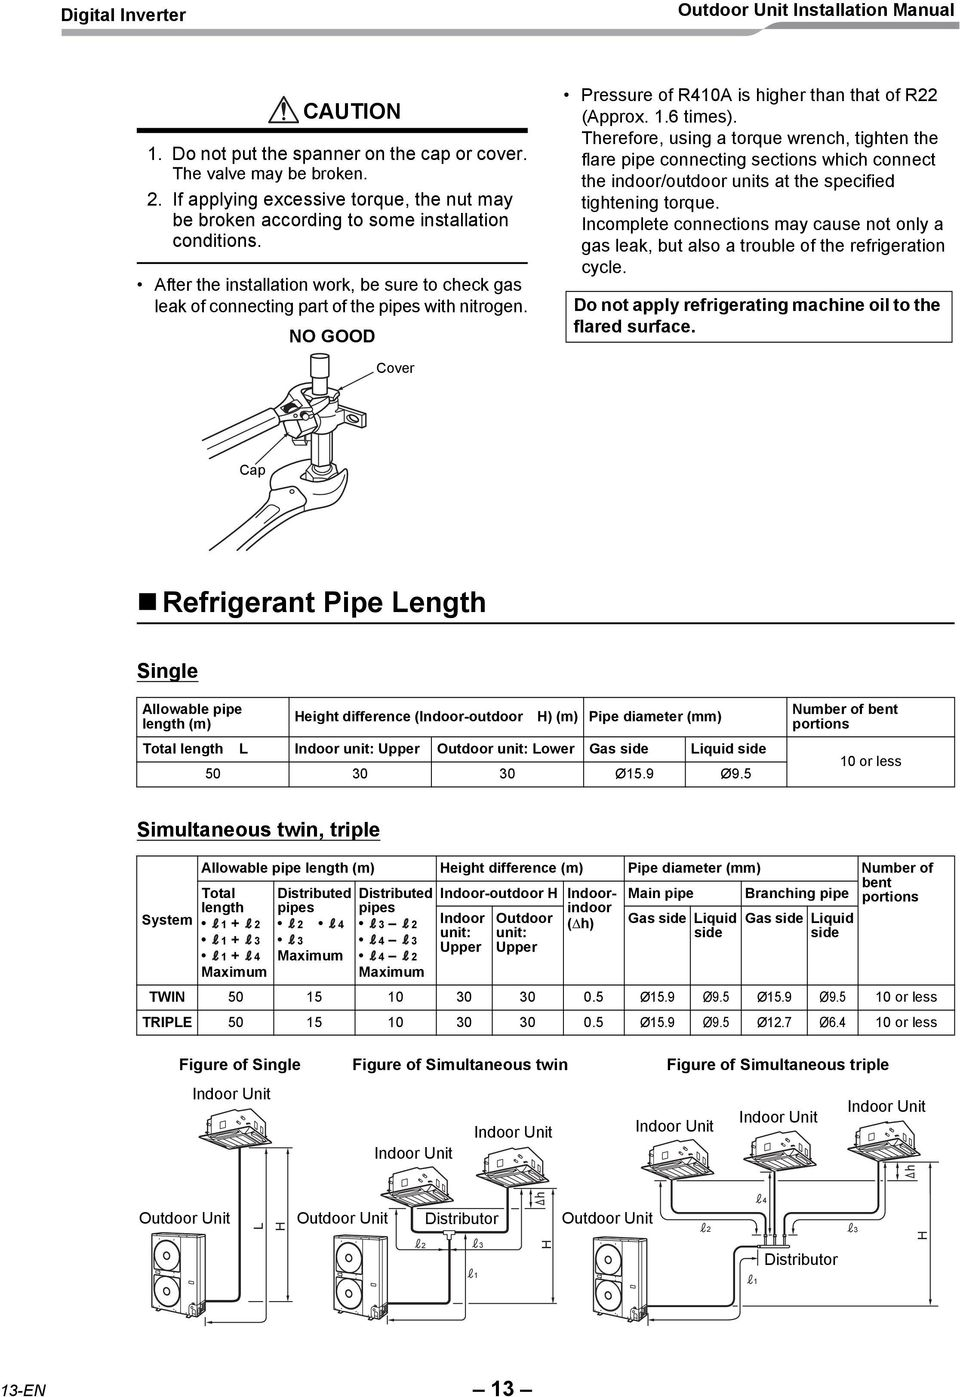 Therefore, using a torque wrench, tighten the flare pipe connecting sections which connect the indoor/outdoor units at the specified tightening torque.